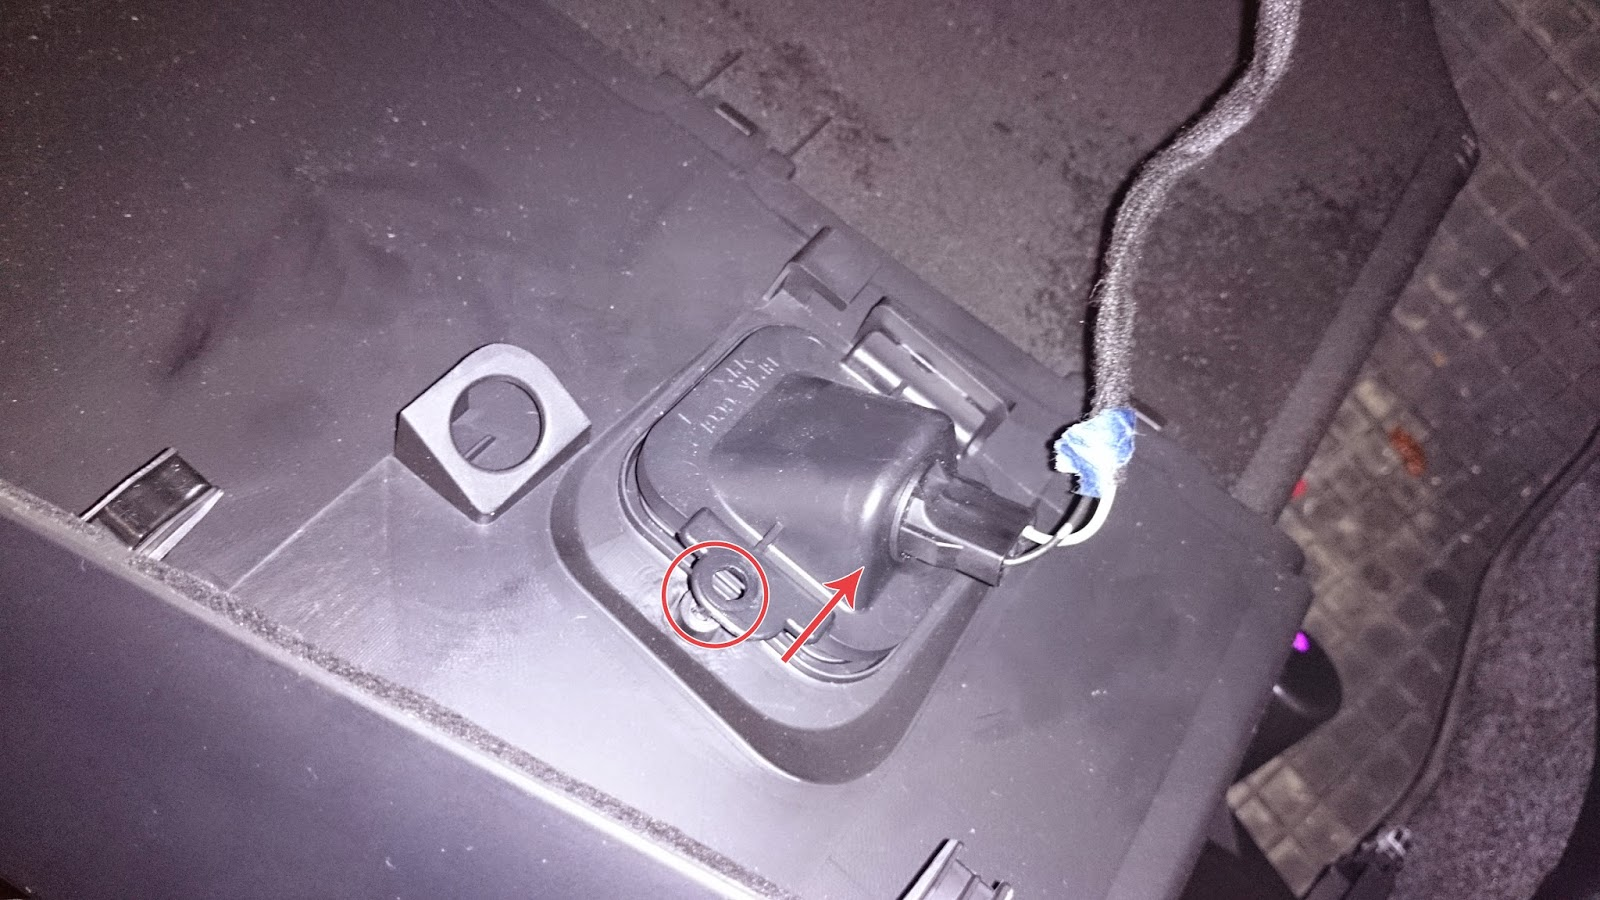 Mazda 3 Bl Hvac Air Actuator Replacement Another Man Blogging Well 2002 Tribute Wiring Diagram On 2014 While Pulling The Lower Dash Panel Completely Youll Find A Wire Blocking You This Is To Glove Box Light It Very Simple Remove